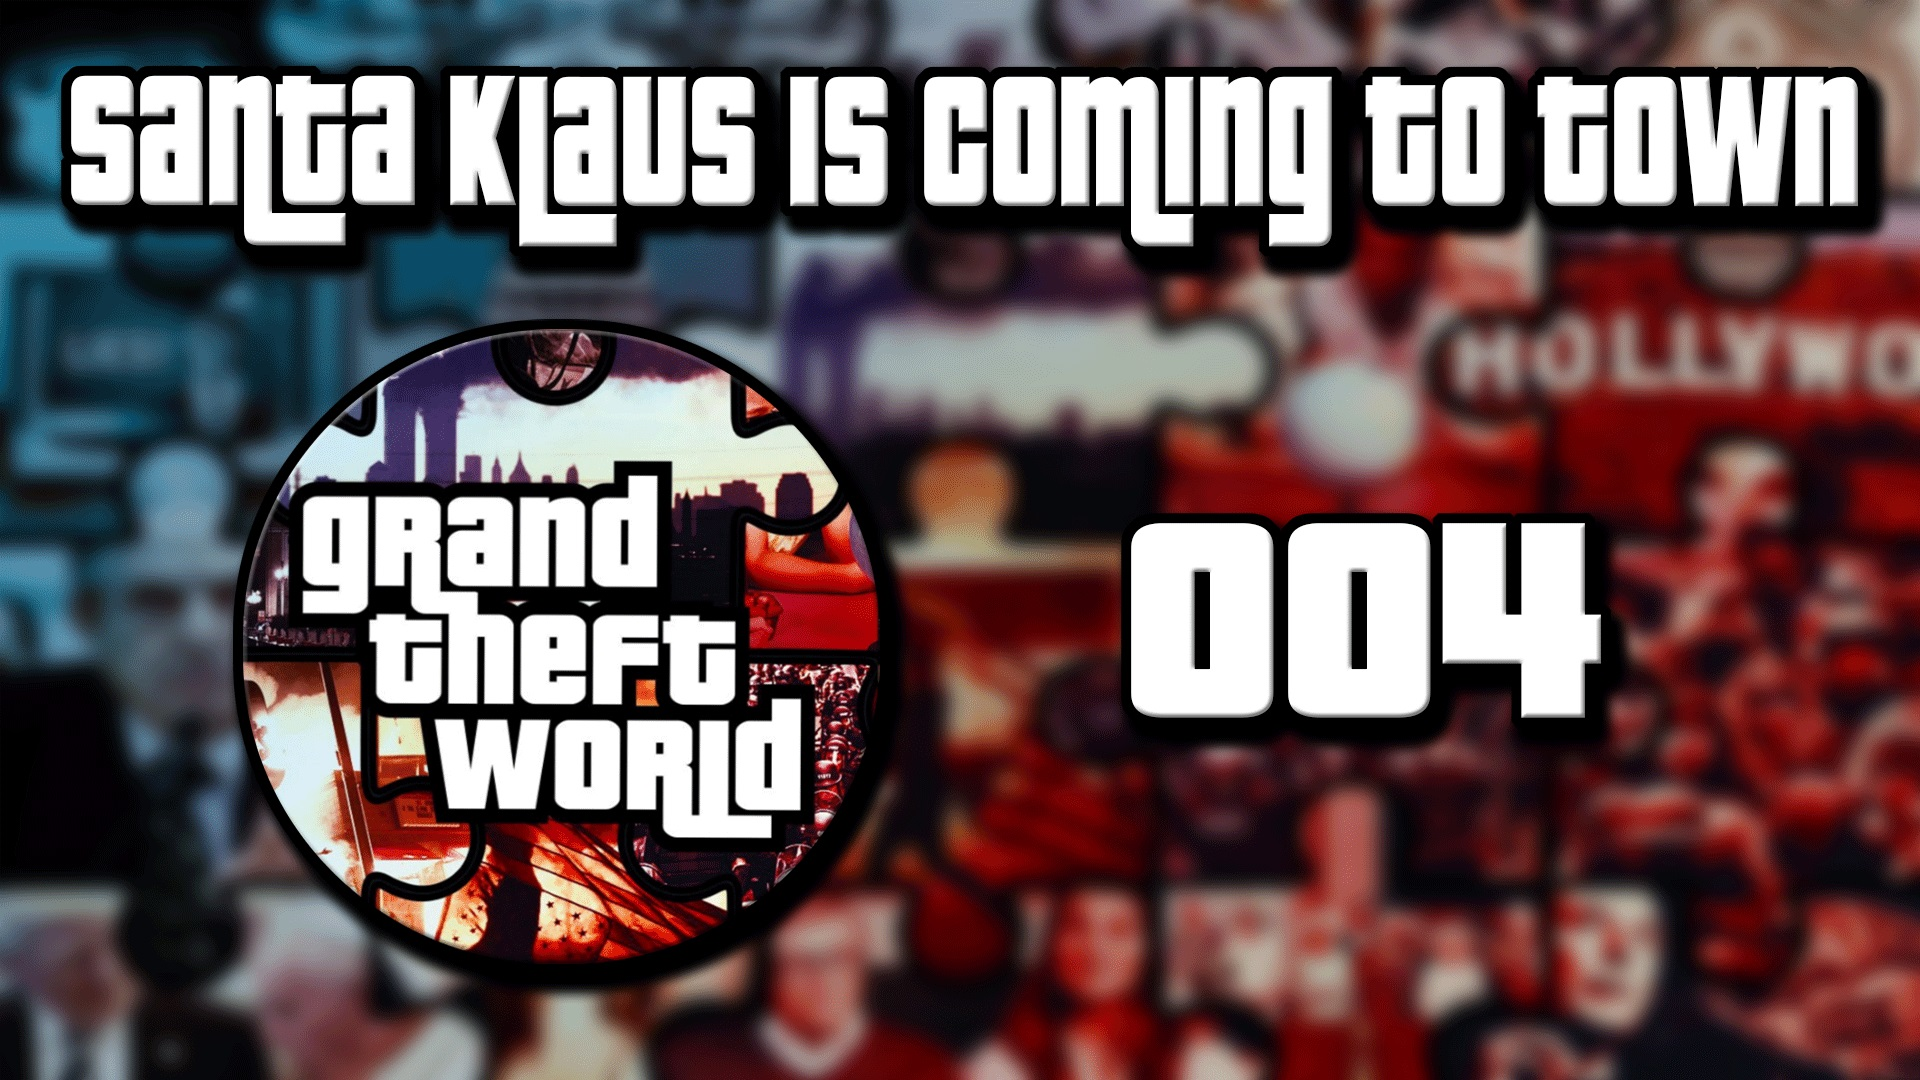 Grand Theft World Podcast 004 | Santa Klaus is Coming to Town